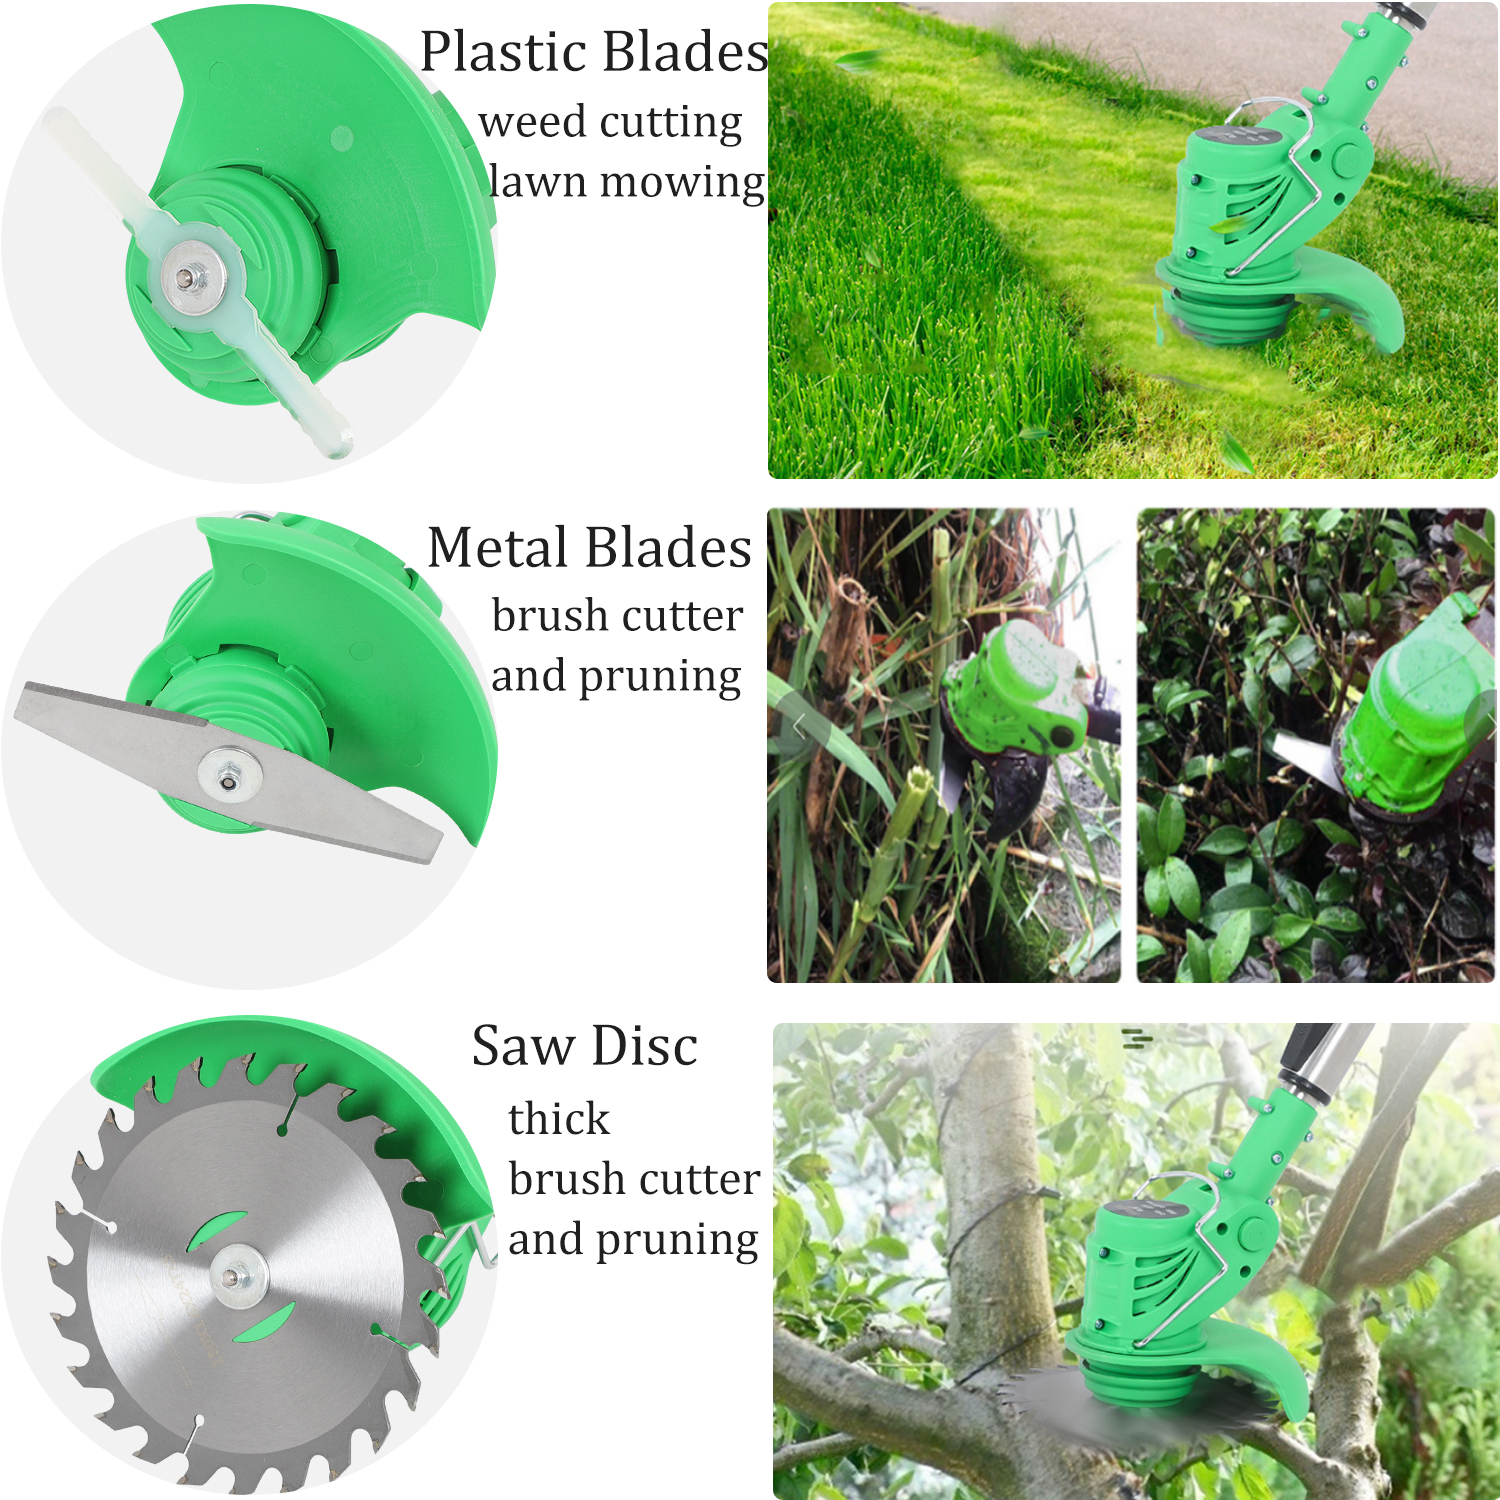 Grass Ion Weed Brush Garden 3000mAh 21V Brush Trimmer Lithium Grass Kit Cutter Edger Cutter Mower Lawn Tools Cordless Electric